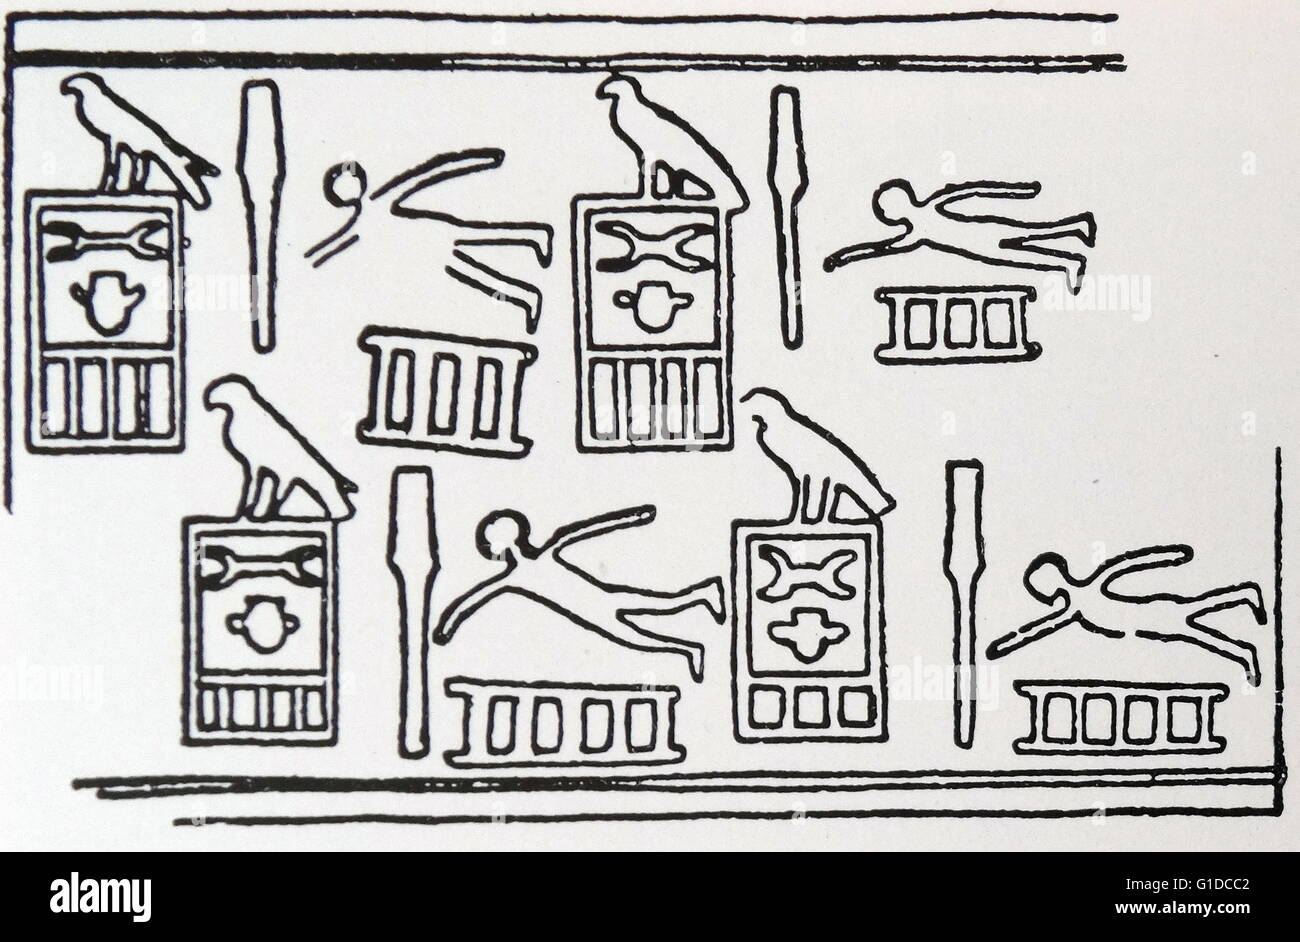 Hieroglyphs depicting elderly swimmers. Dated 3rd Century BC - Stock Image